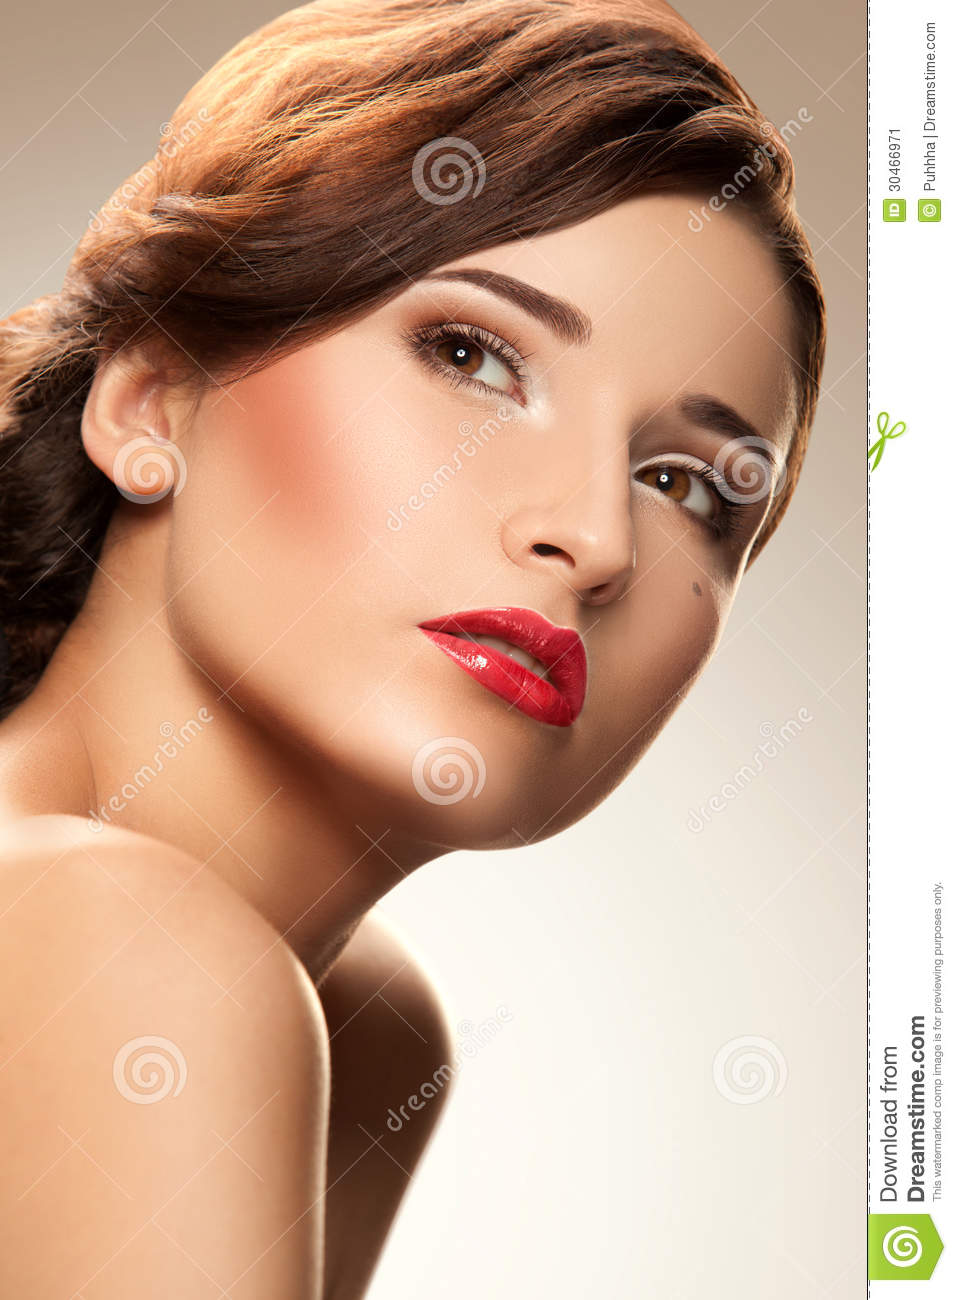 Red Lip. Woman With Nice Makeup And Red Lipstick Stock